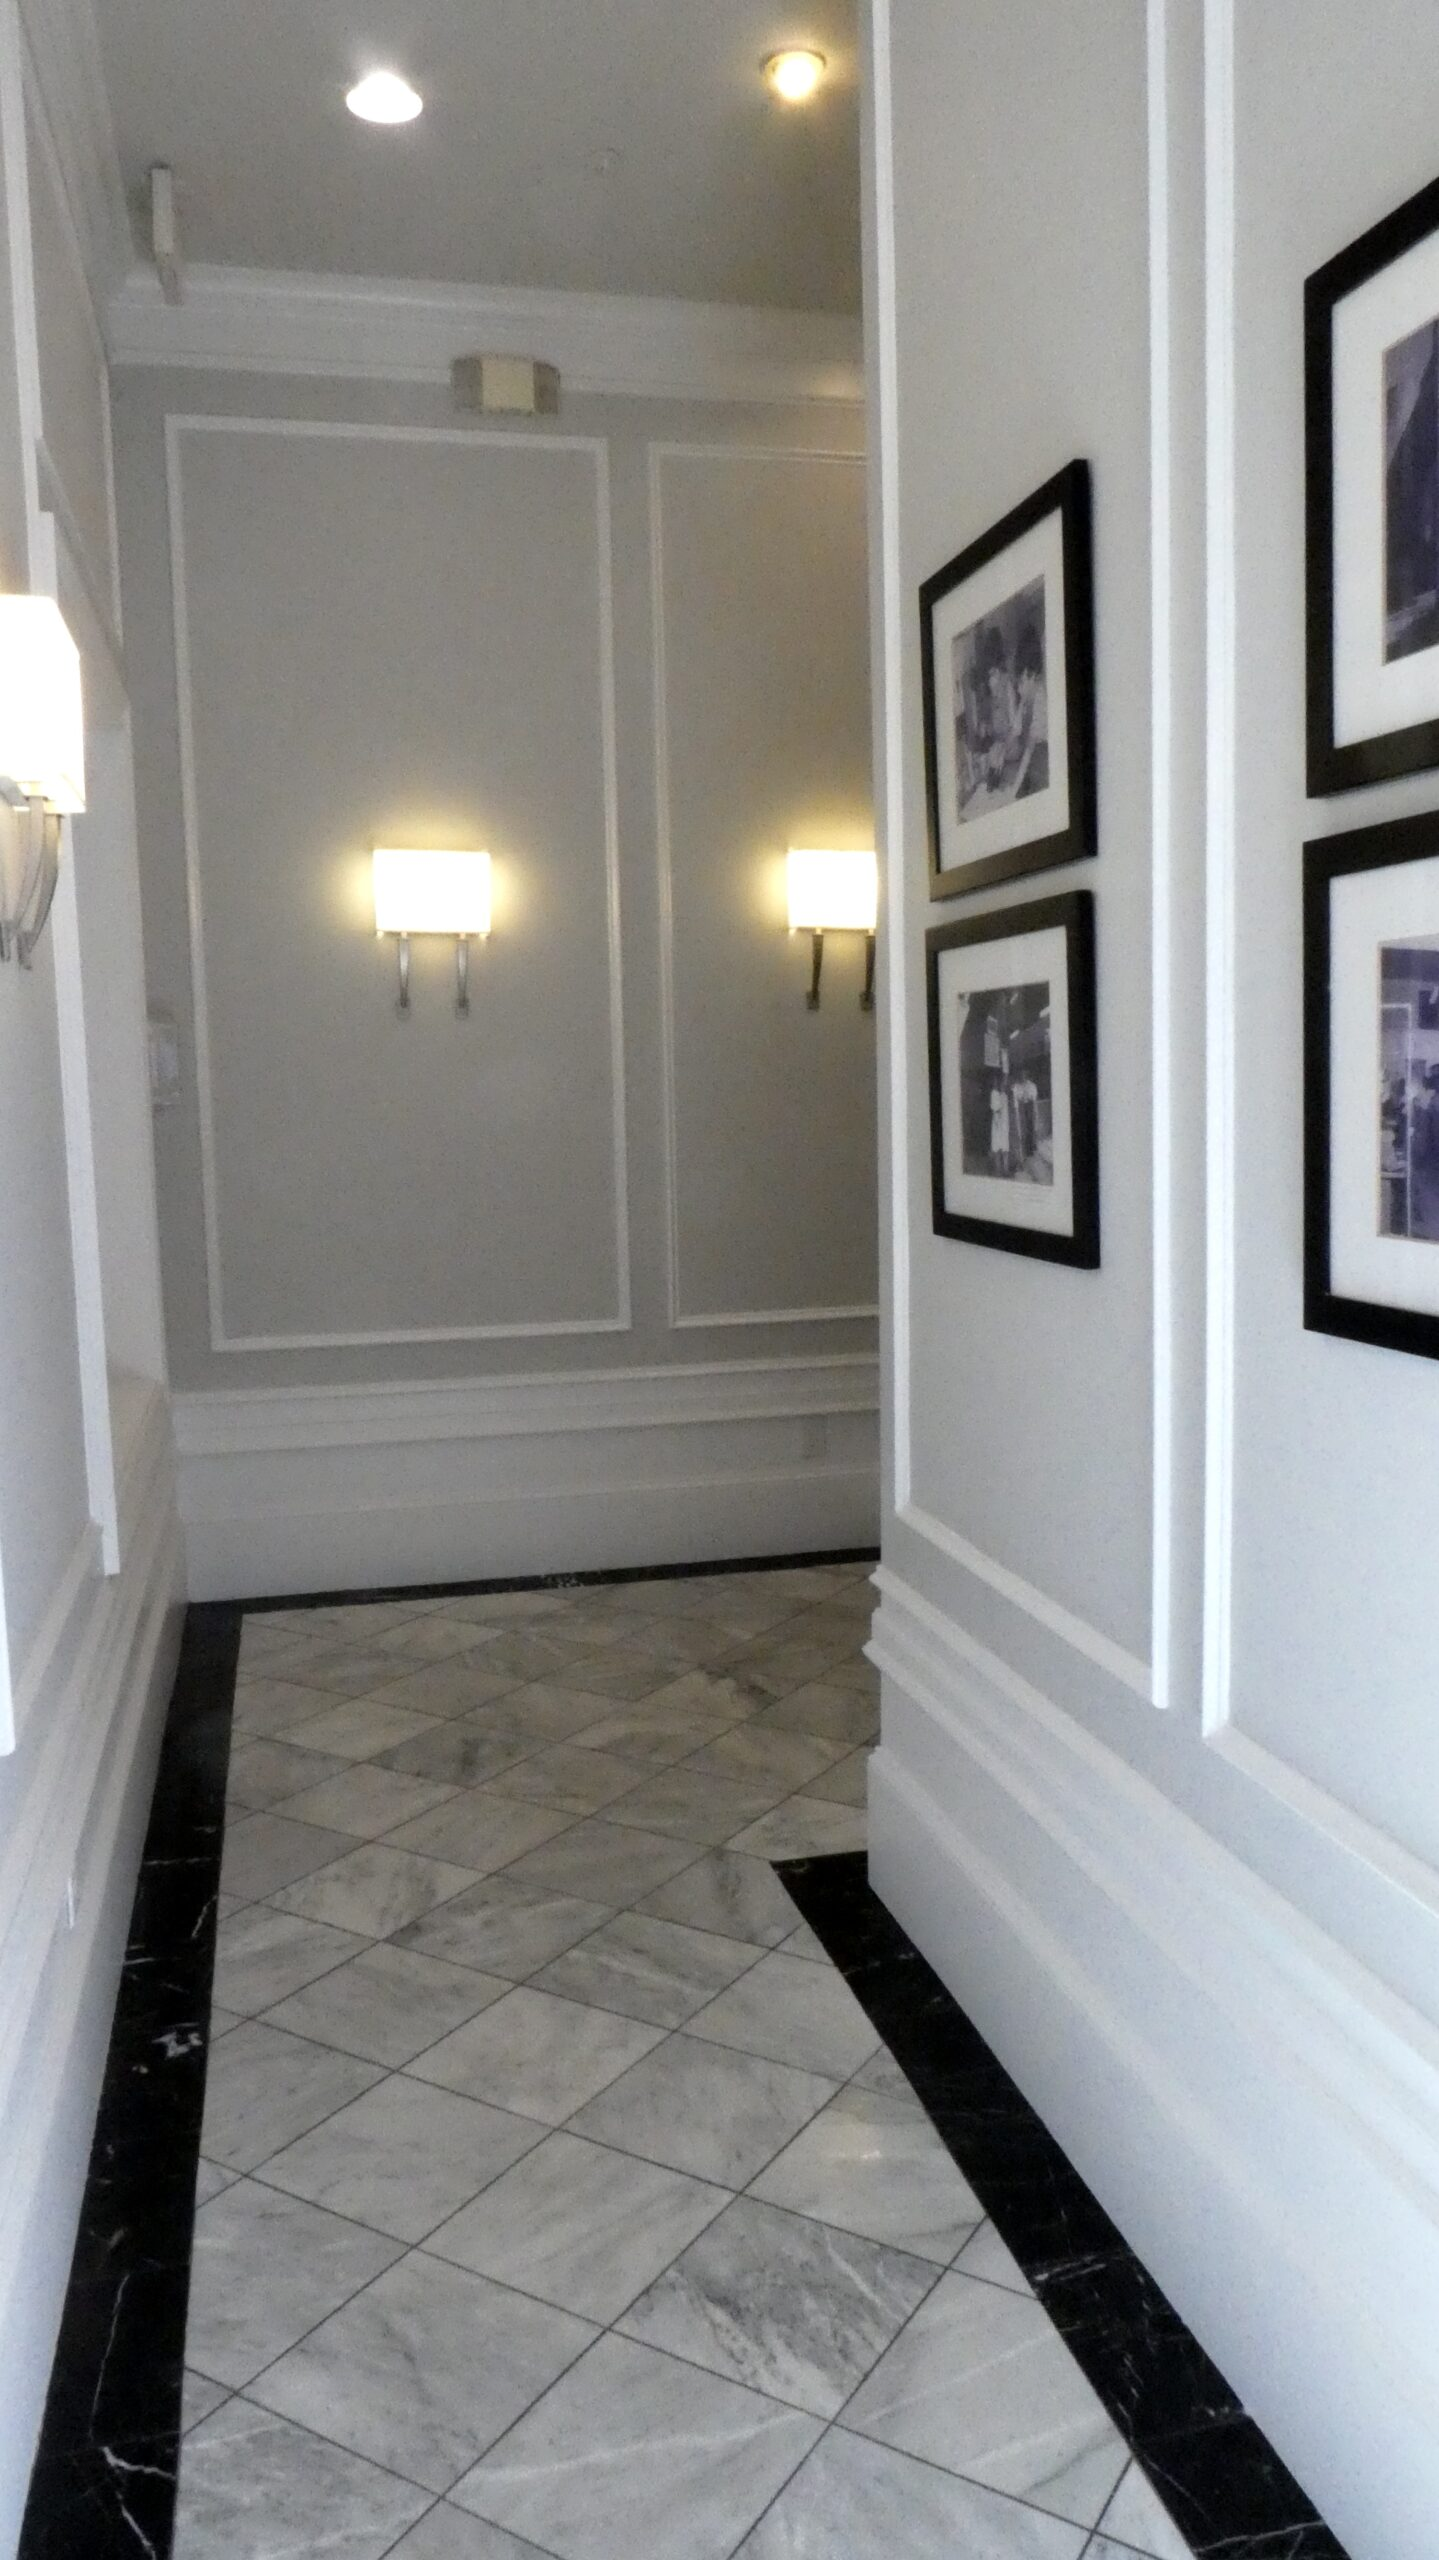 Detail of the entry hallway of the New York Hatters building showing marble tiles and wainscoting